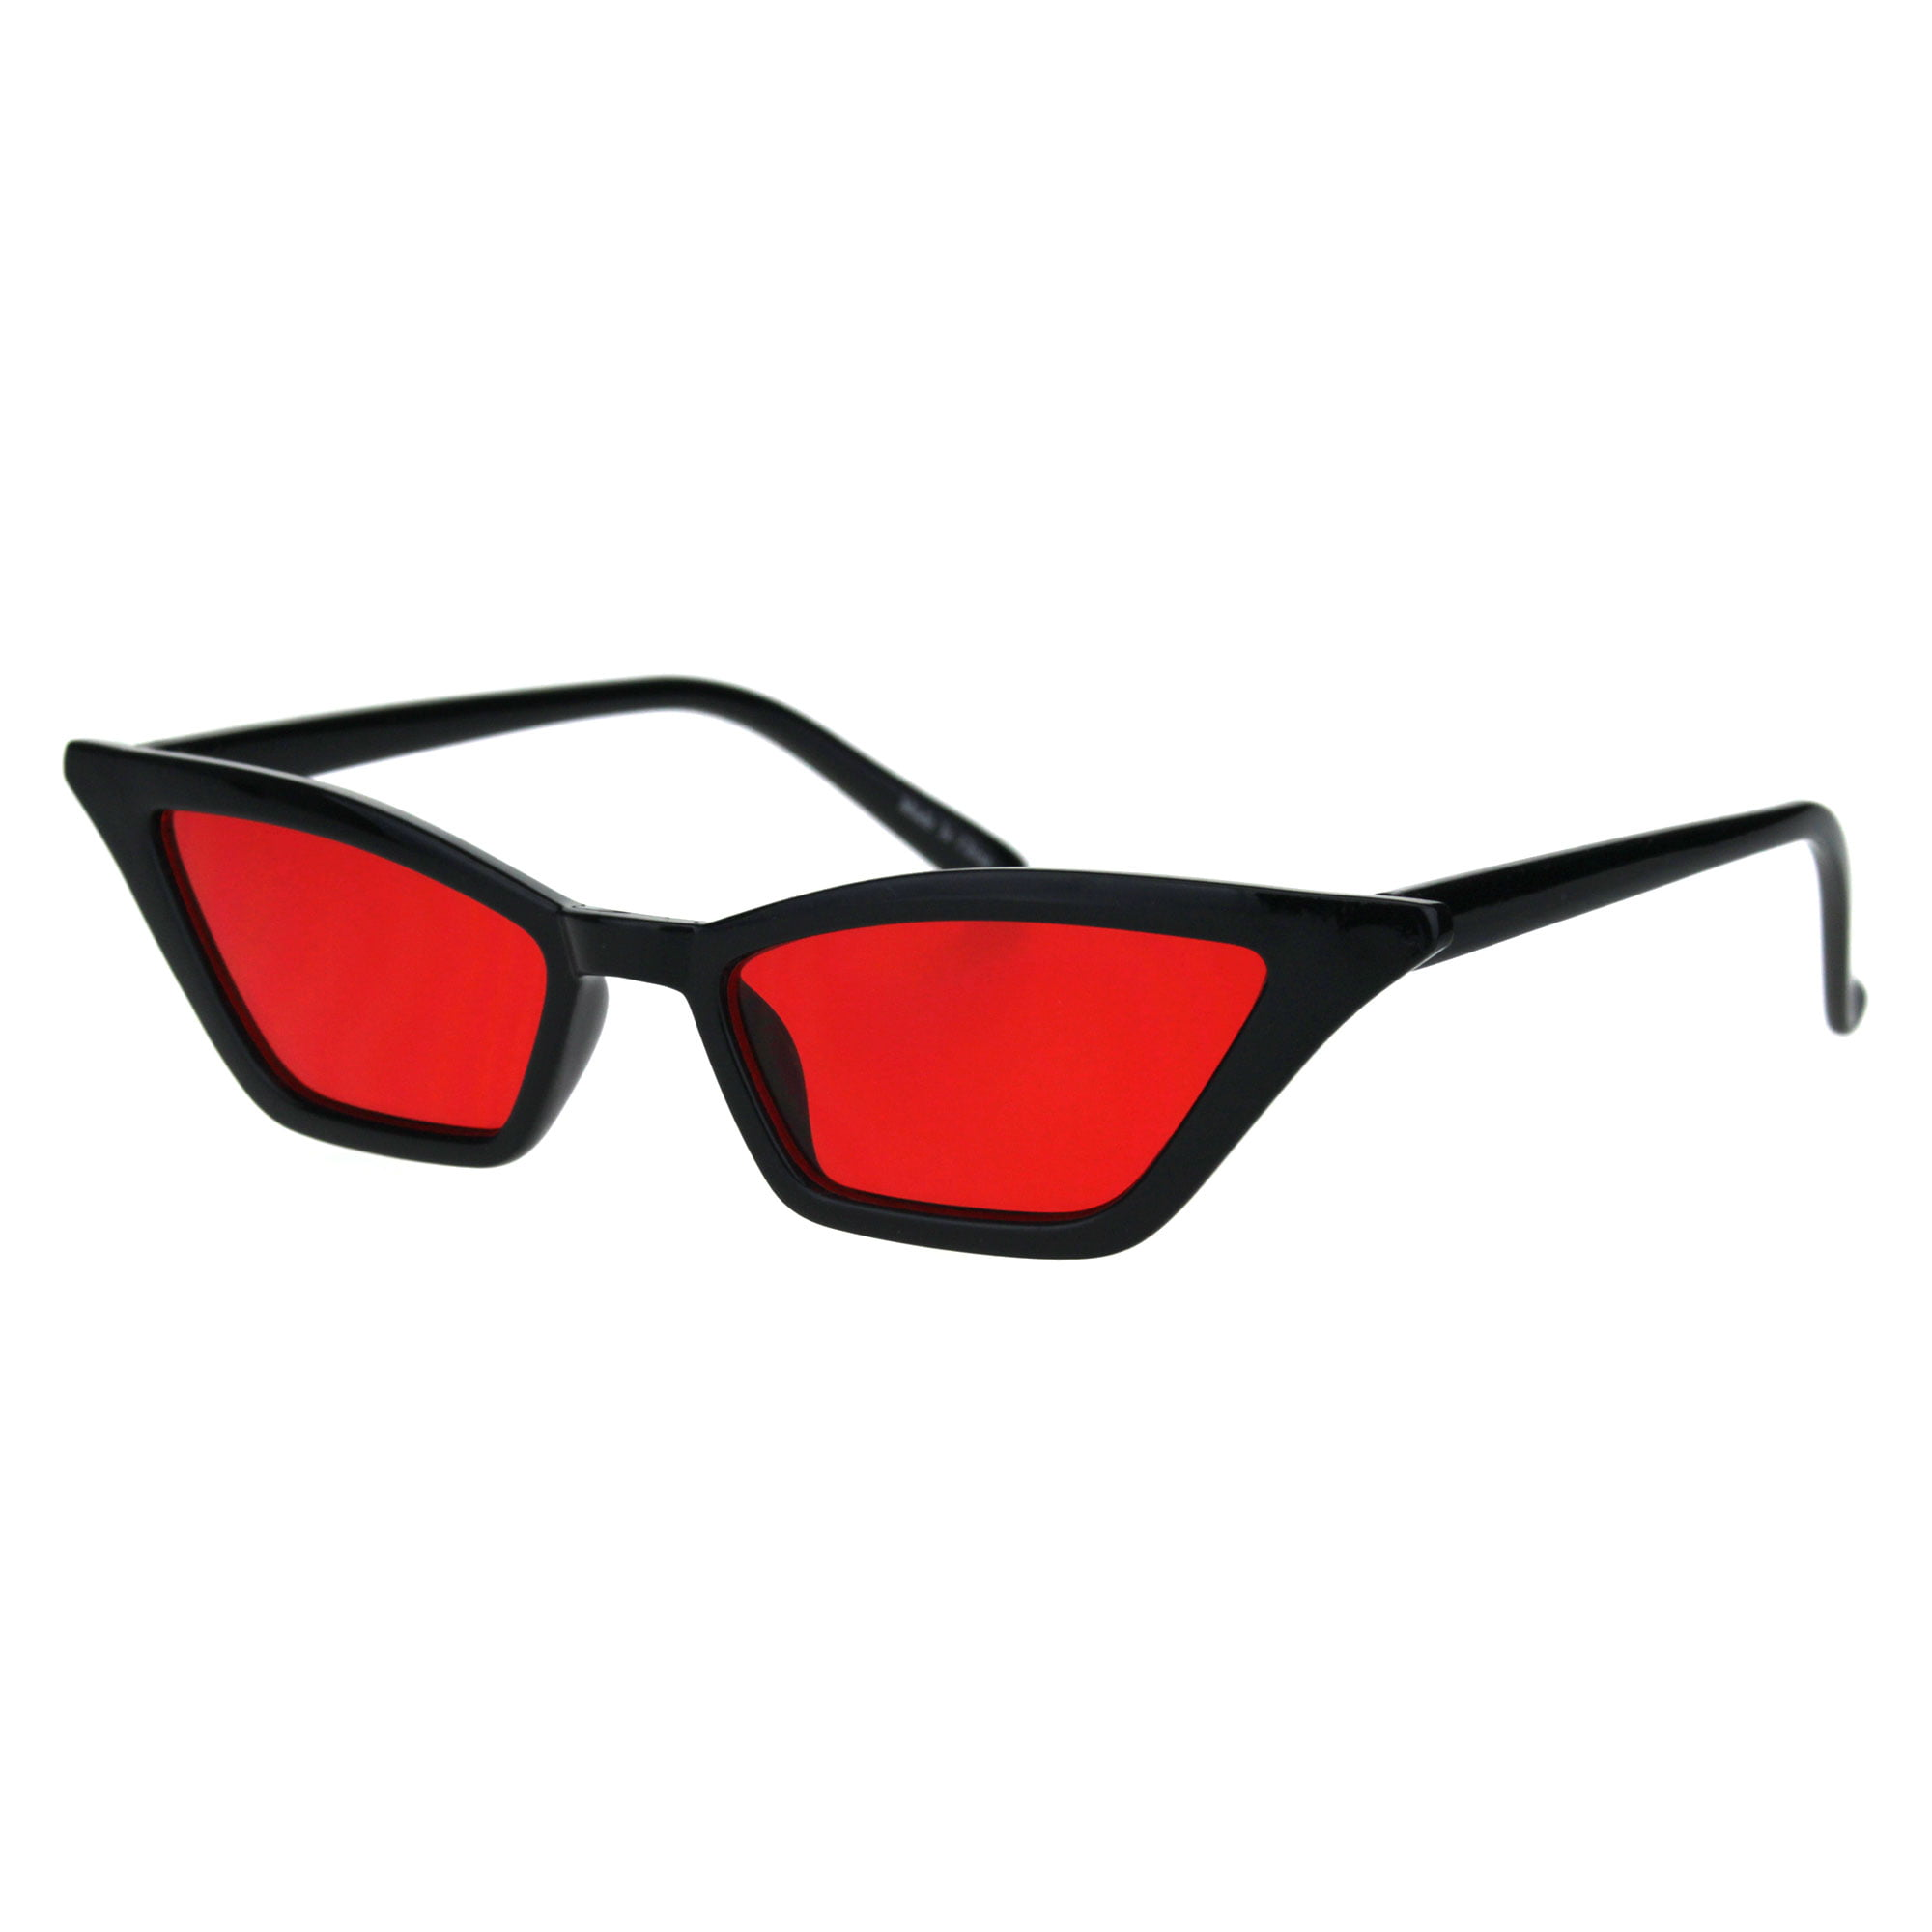 Womens Squared Thin Plastic Minimalist Cat Eye Sunglasses